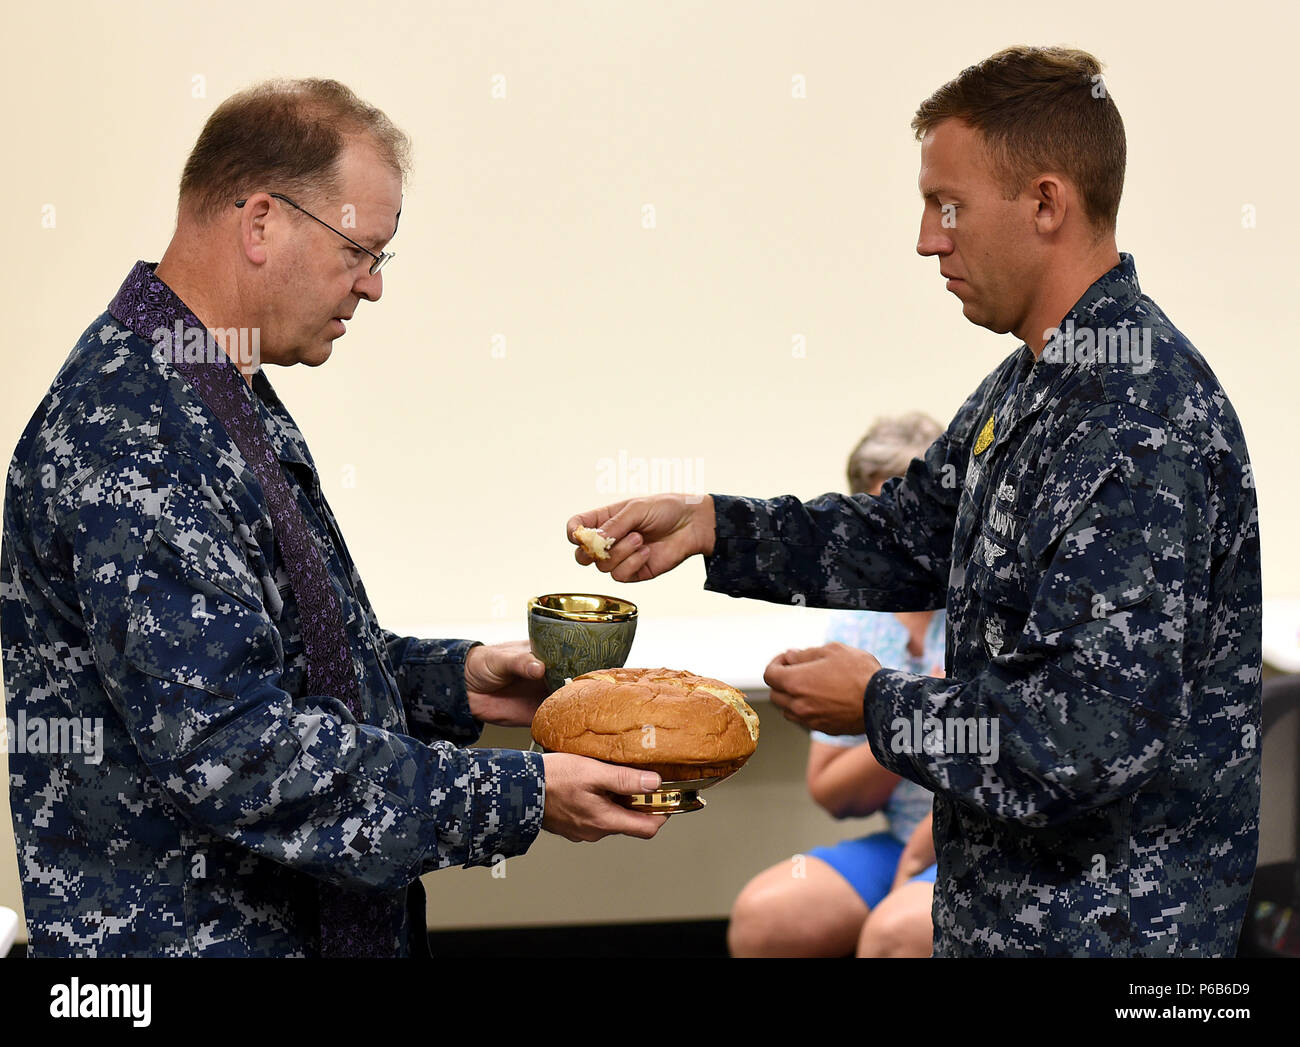 170301-N-SS432-032  BARKING SANDS, Hawaii (March 1, 2017) Command Navy Region Hawaii Chaplain Capt. Brian Haley gives communion to Master at Arms 2nd Class George Weatherby during an Ash Wednesday service at the Pacific Missile Range Facility. (U.S. Navy photo by Mass Communication Specialist 2nd Class Omar Powell/Released) - Stock Image